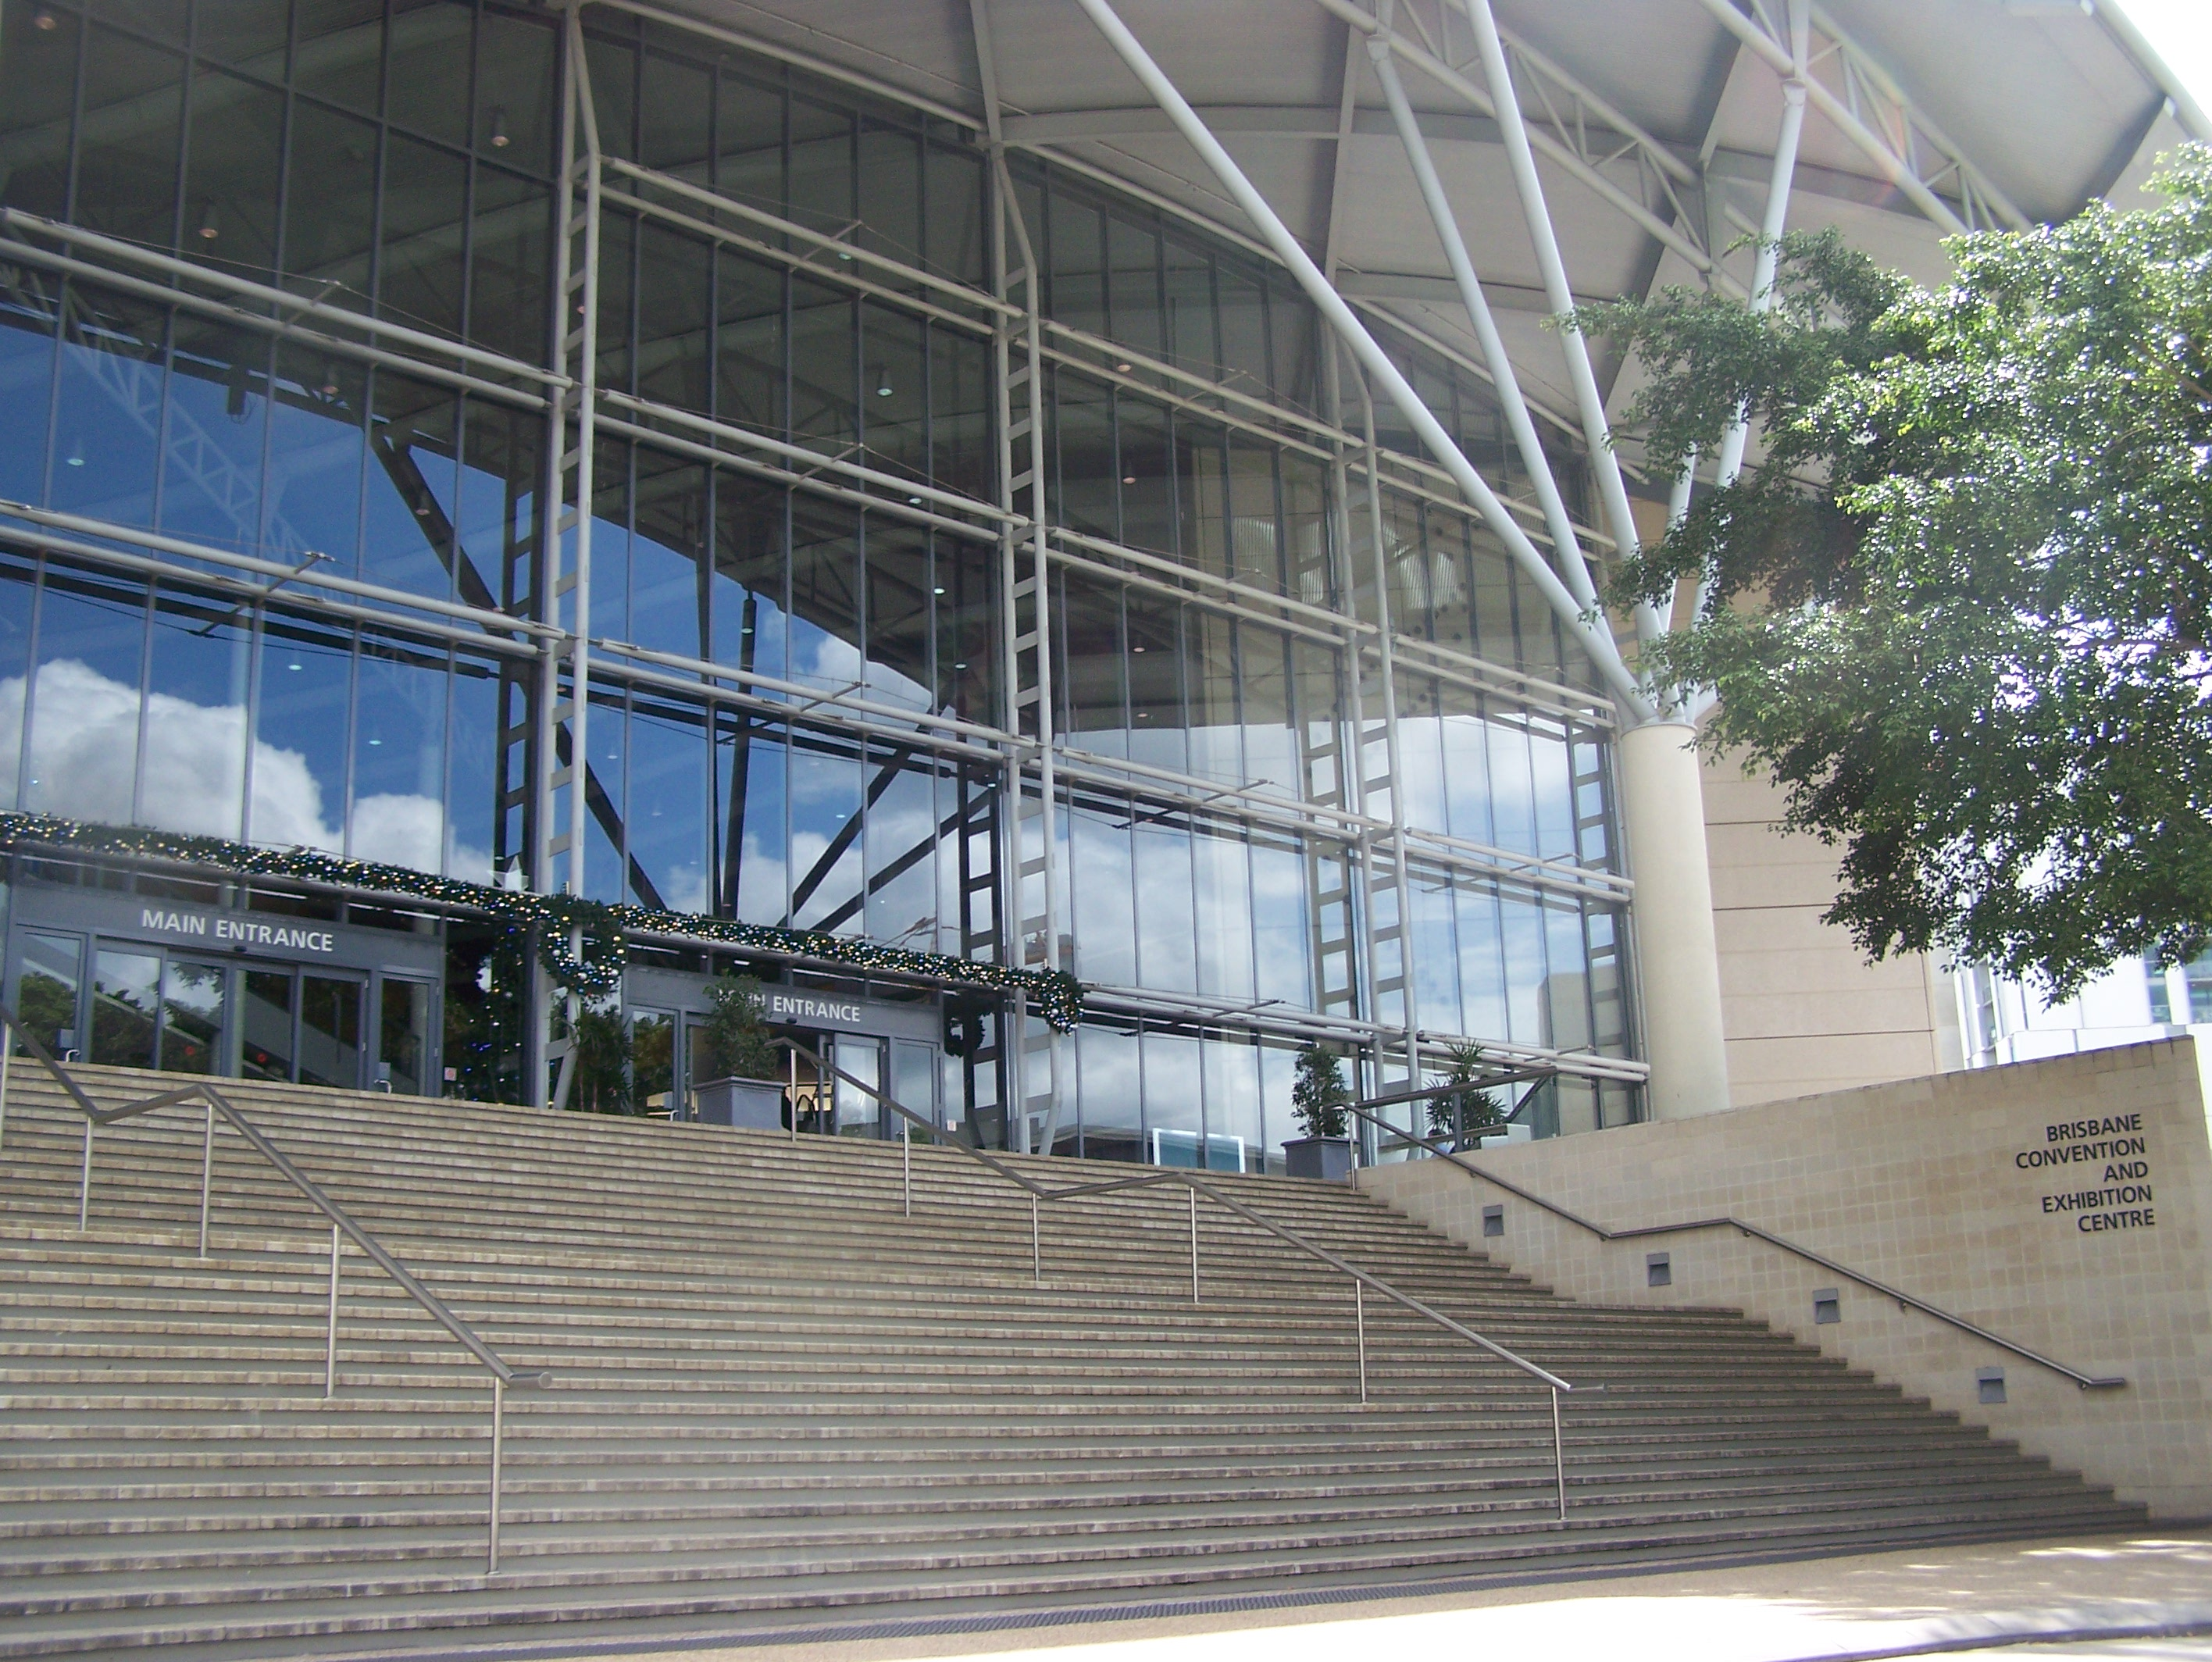 Brisbane Convention Centre, December 2007